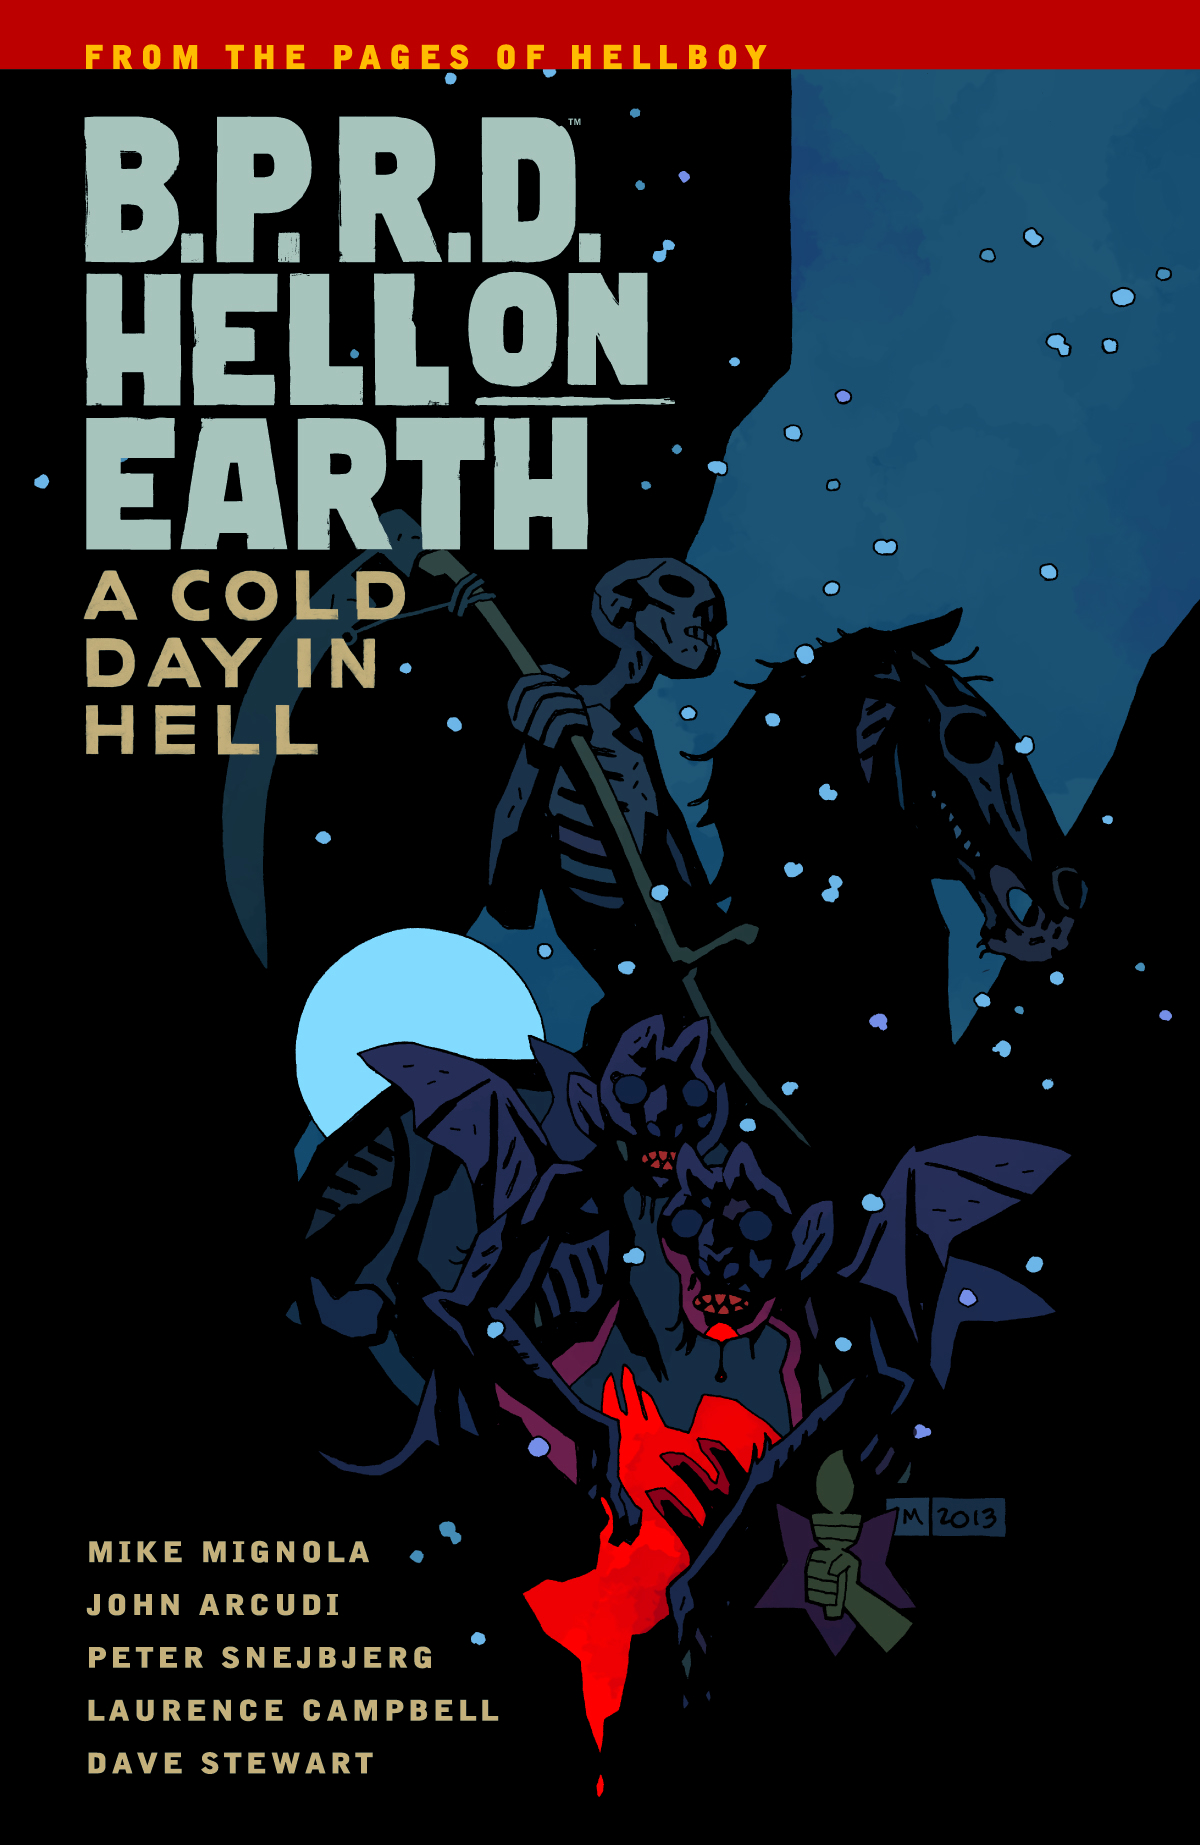 BPRD HELL ON EARTH TP VOL 07 A COLD DAY IN HELL